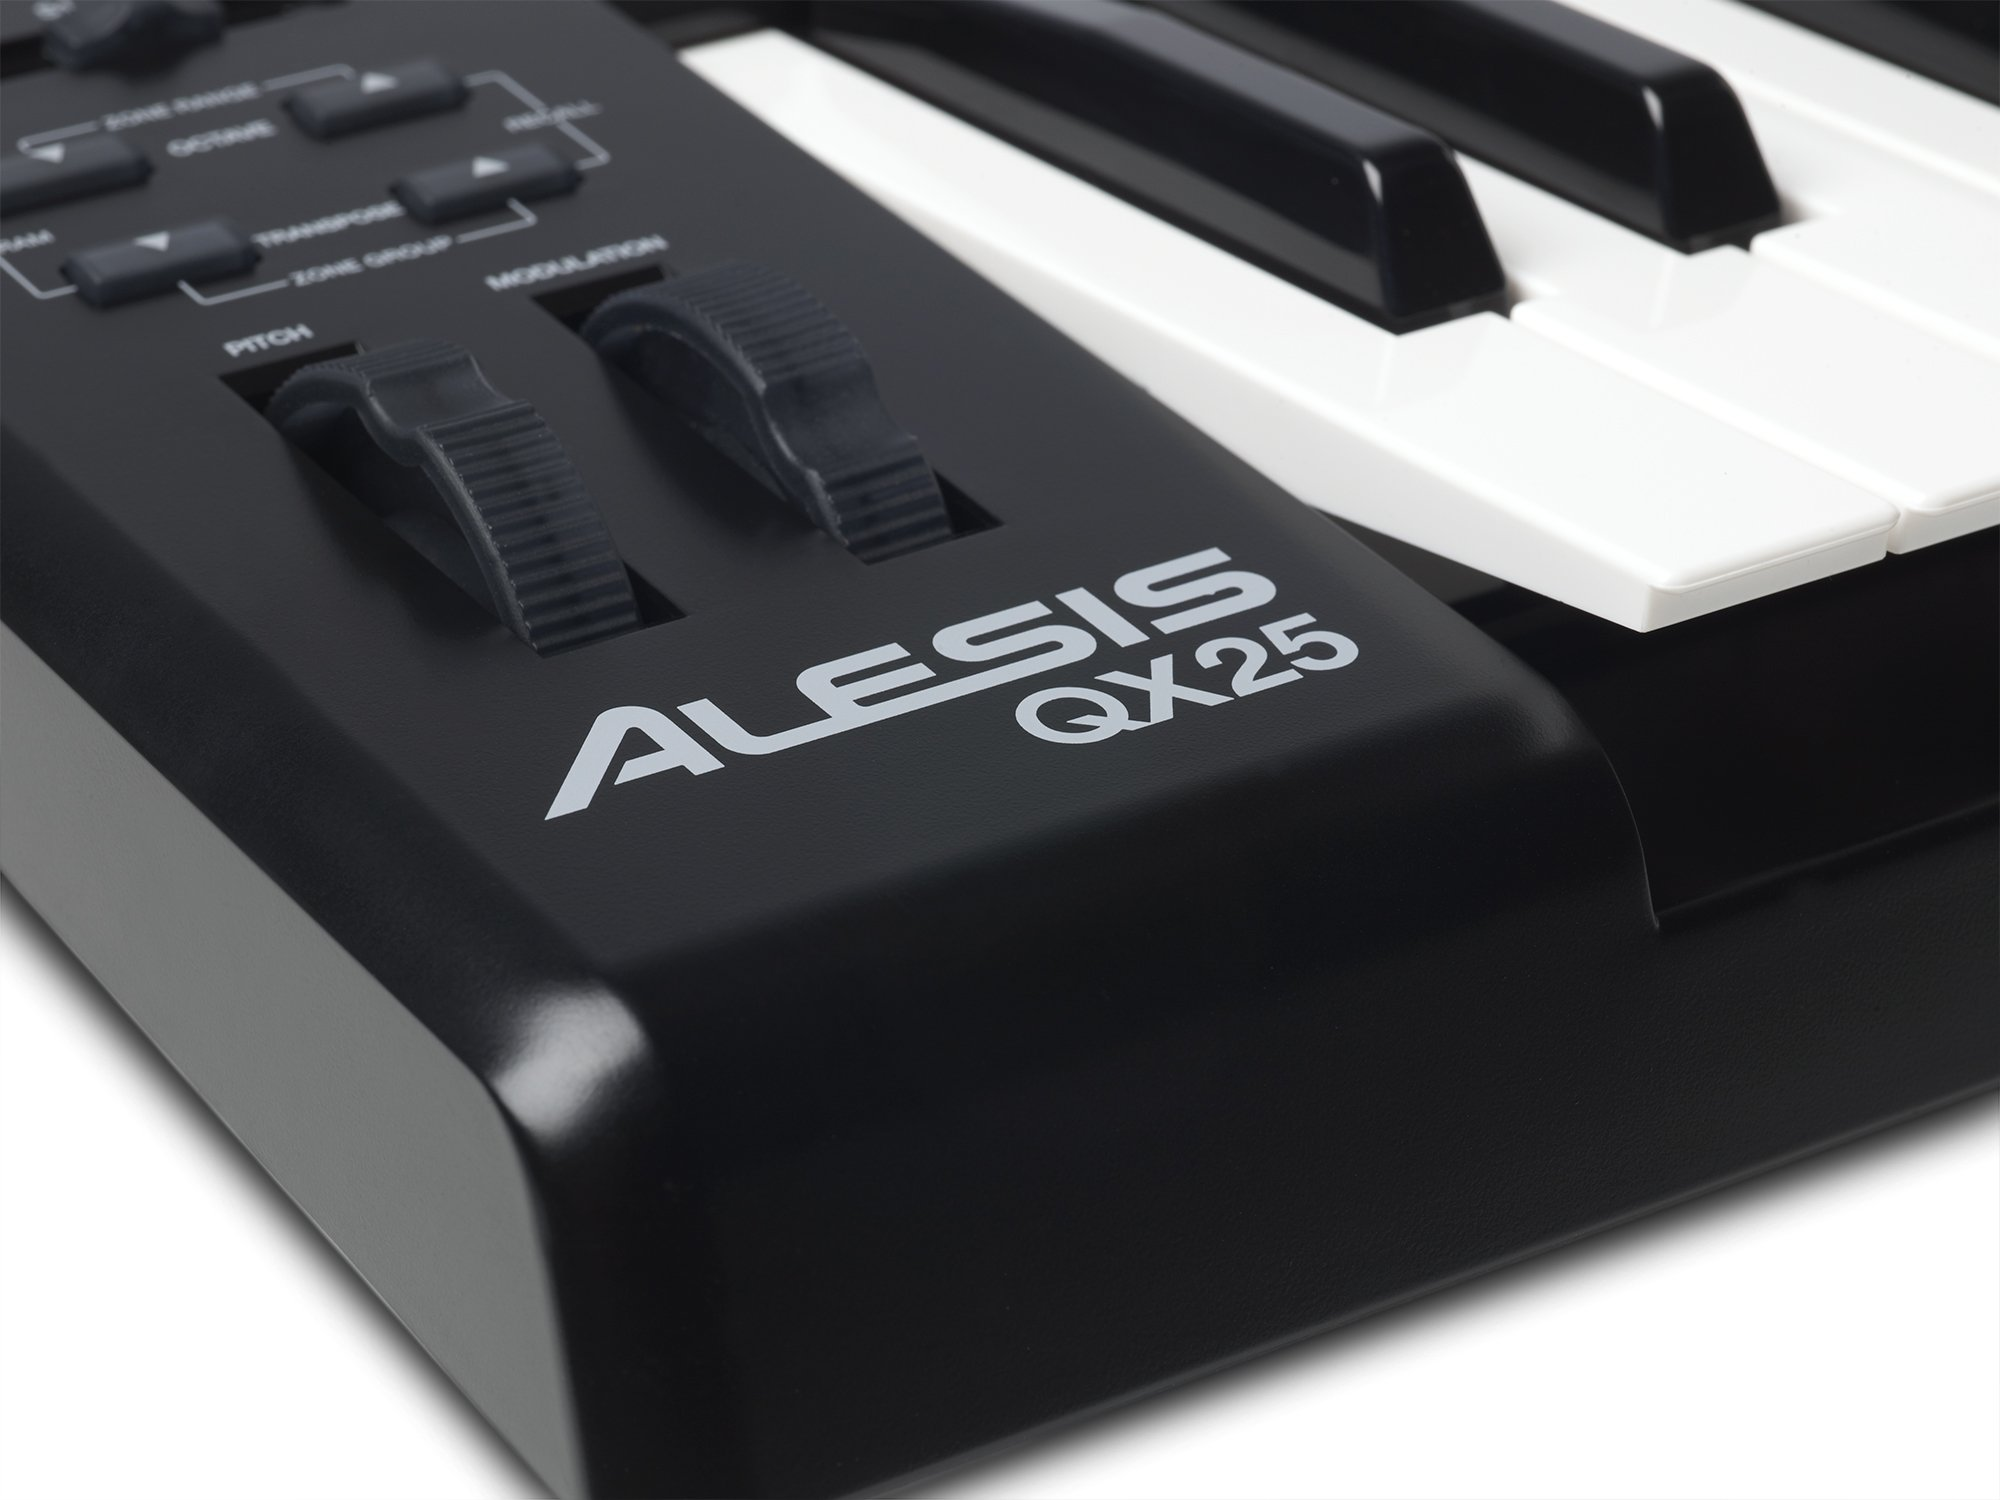 Image result for Alesis q25 mm